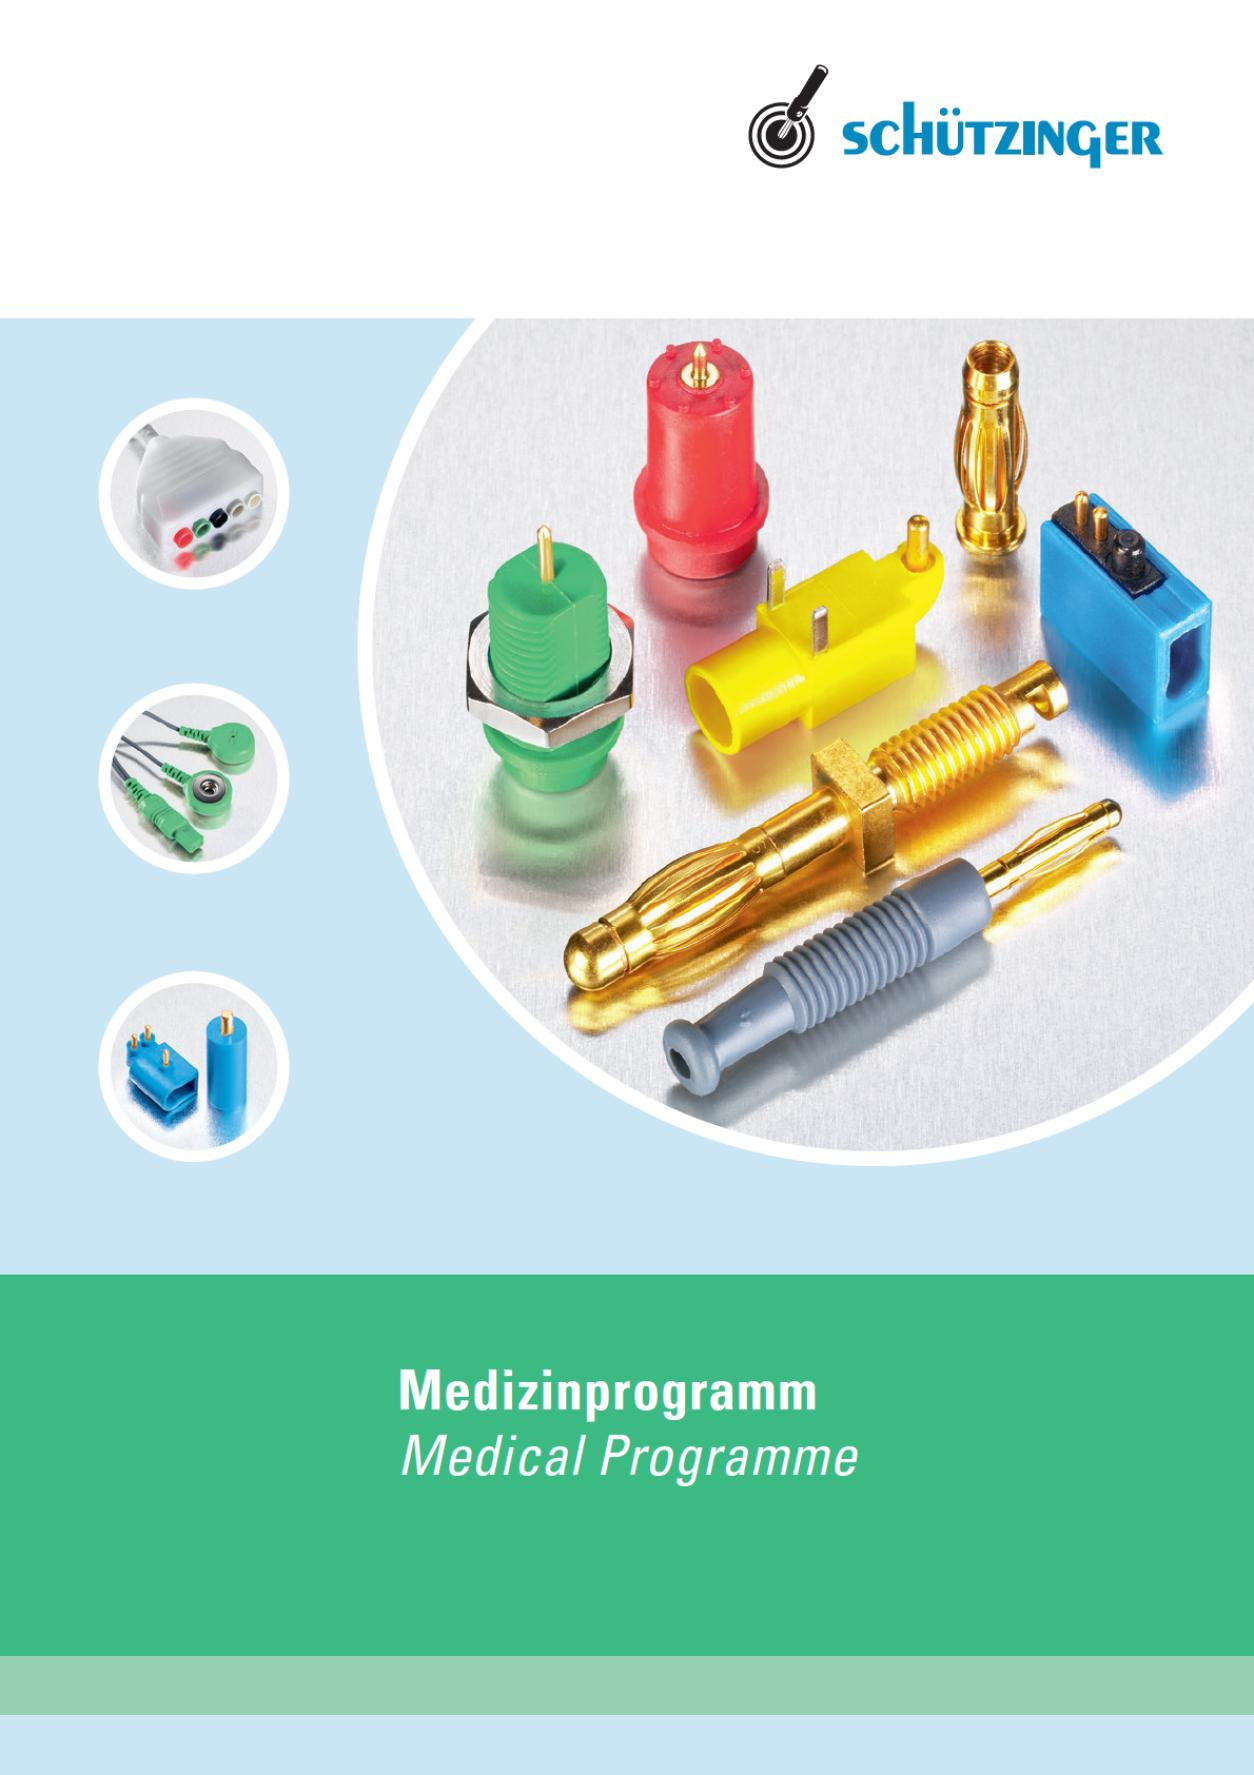 Medical components Schützinger